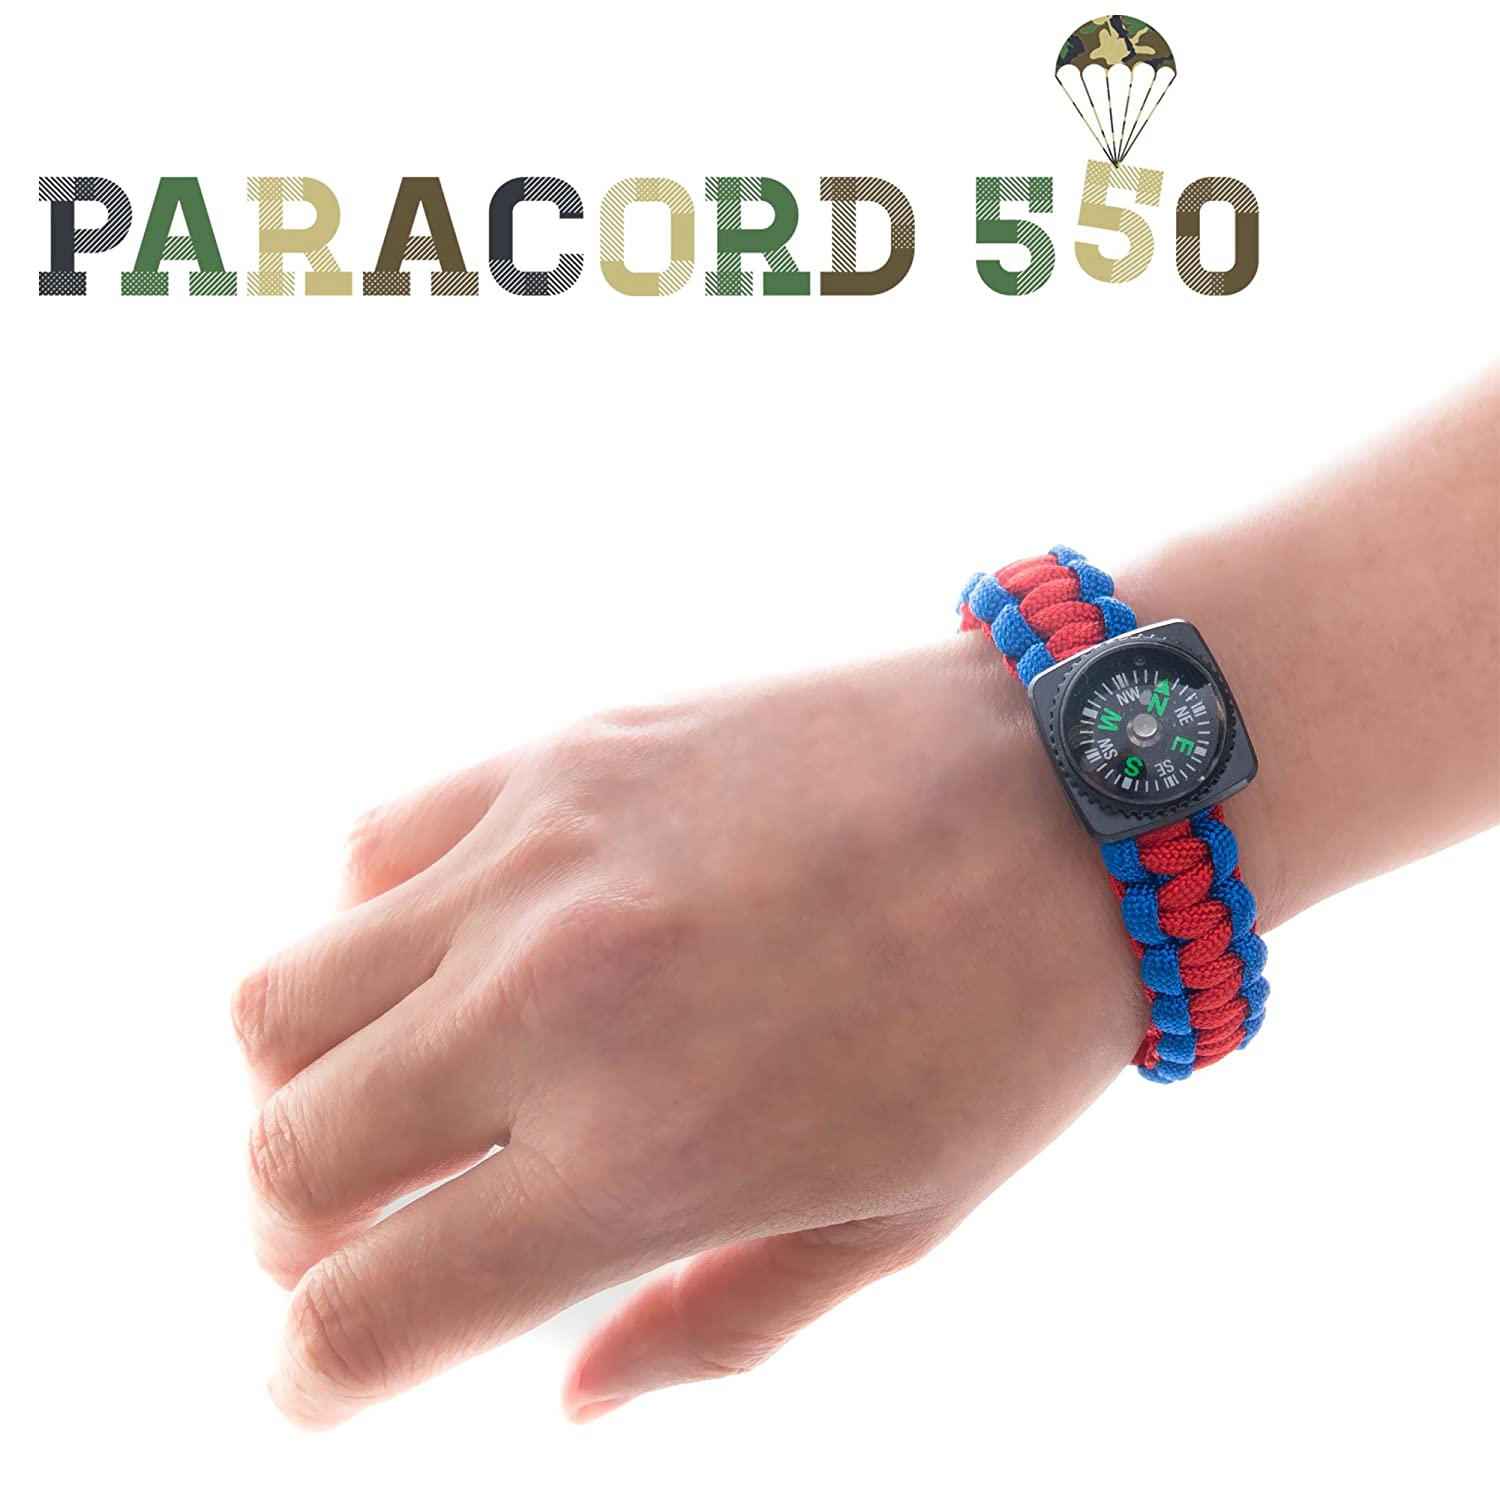 Compass Paracord Bracelet Set for Men Teen Boys 6 Pack Survival Emergency Tactical Bracelets Braided with 550 lbs Parachute Cord and Mini Compasses Mens Outdoor Accessories Camp Party Favors